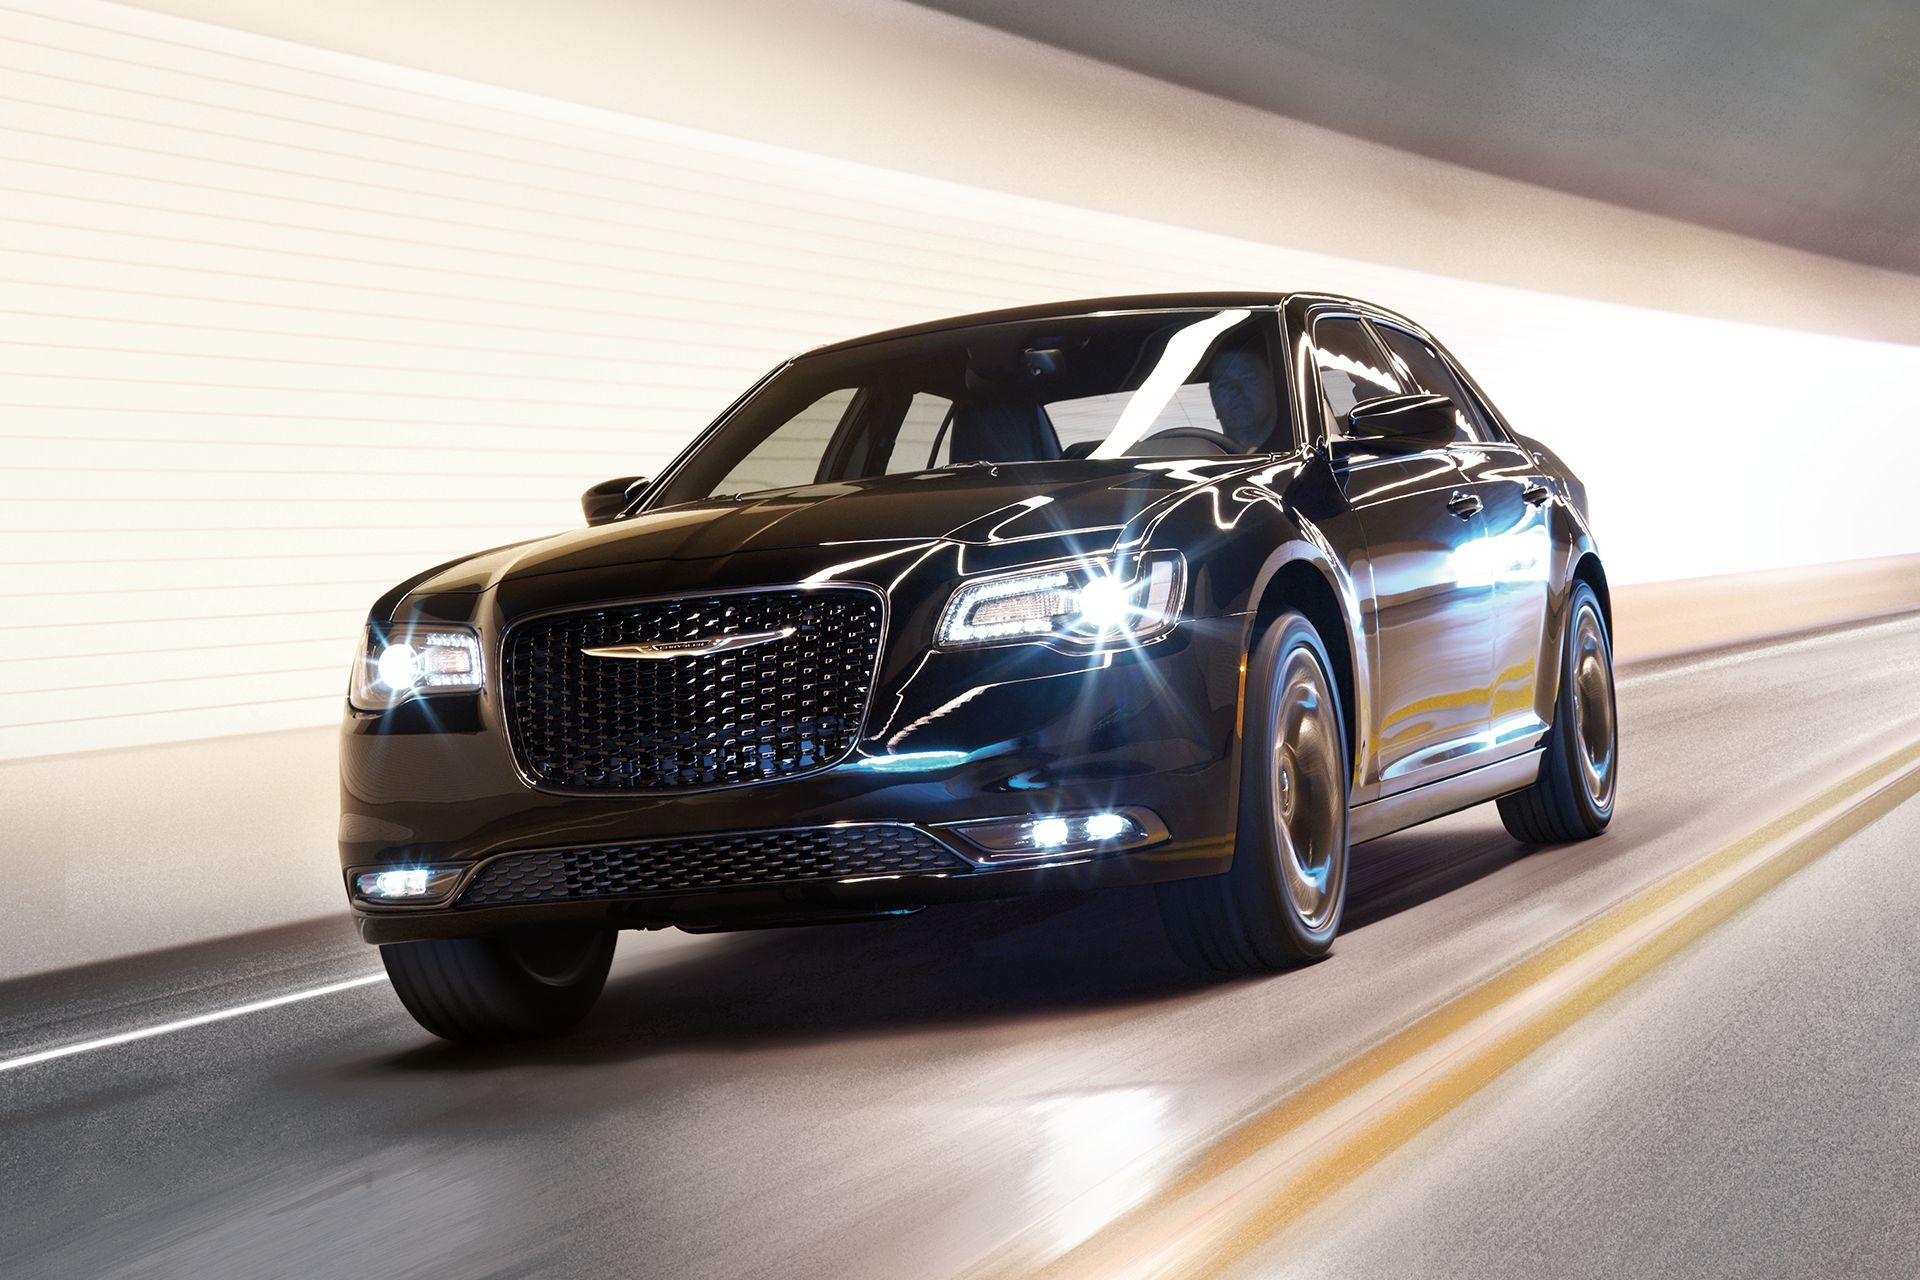 2019 Chrysler 300 with adaptive headlamps